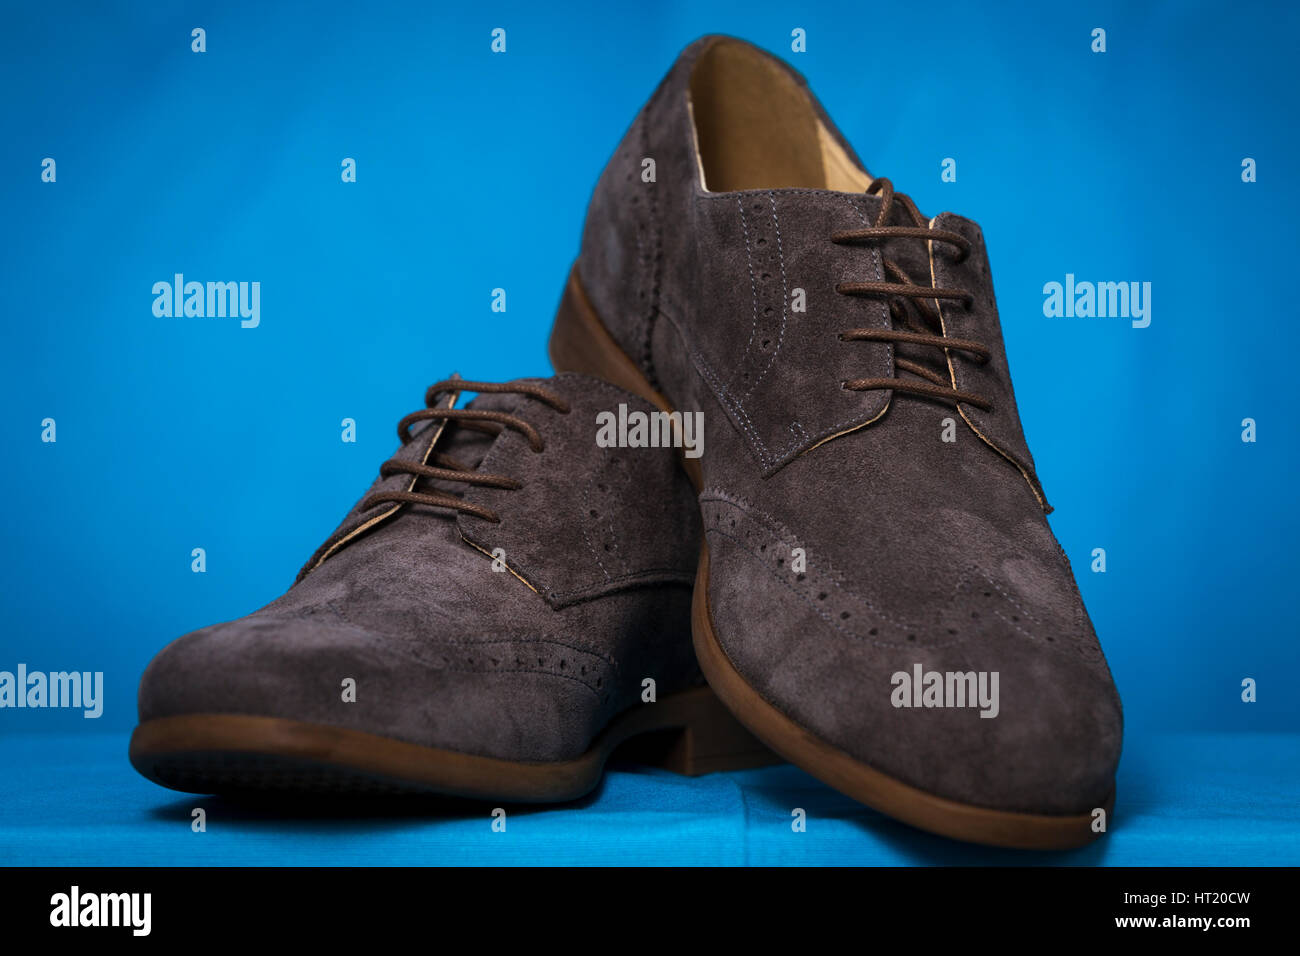 save off c1e1f d1529 Mens Geox respira shoes Stock Photo: 135268585 - Alamy